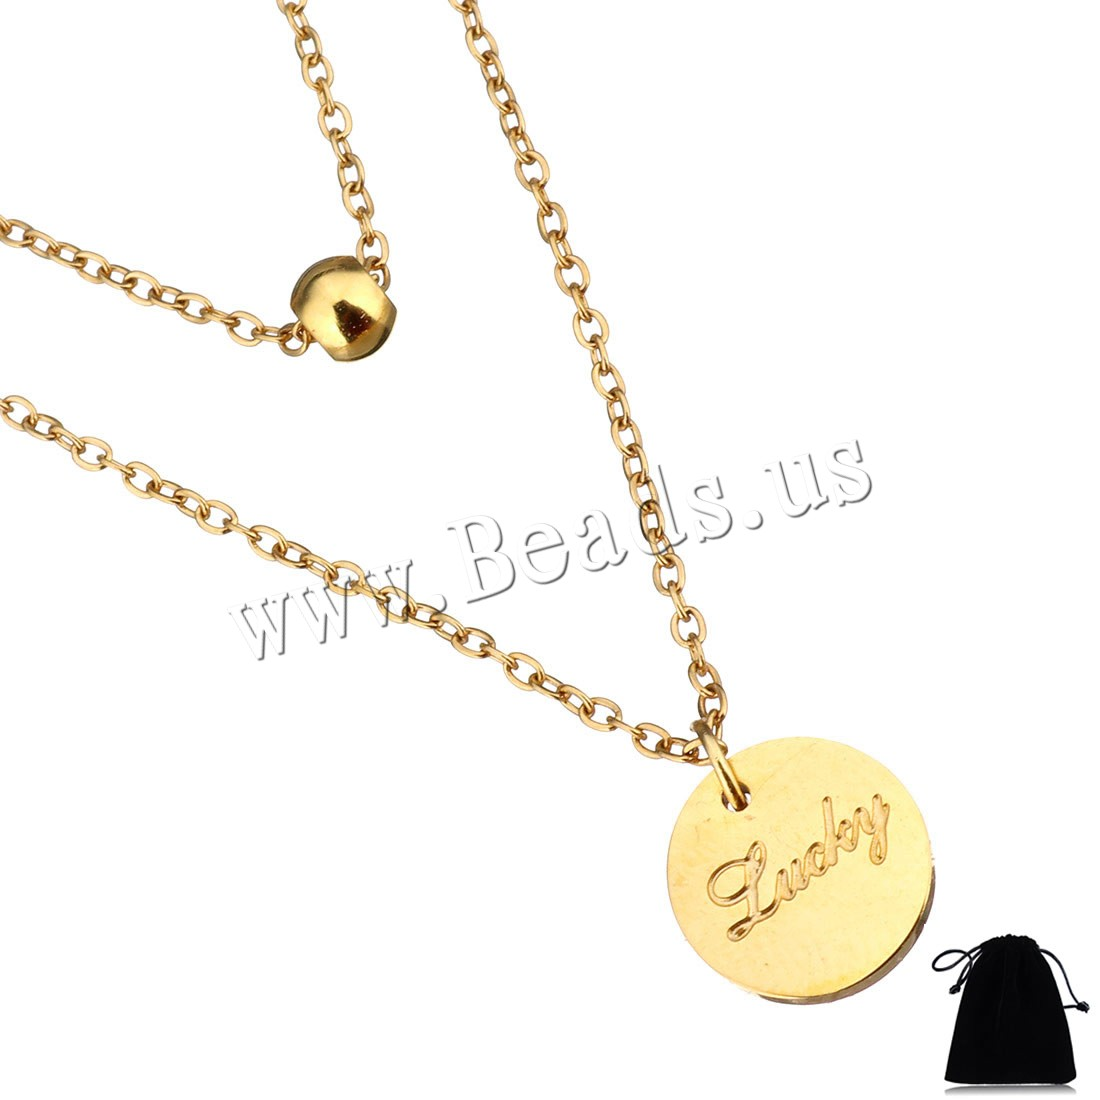 Buy Stainless Steel Jewelry Necklace Velveteen 2Inch extender chain Flat Round word lucky gold color plated oval chain & woman & 2-strand 9mm 4mm 1mm Sold Per Approx 14 Inch Strand